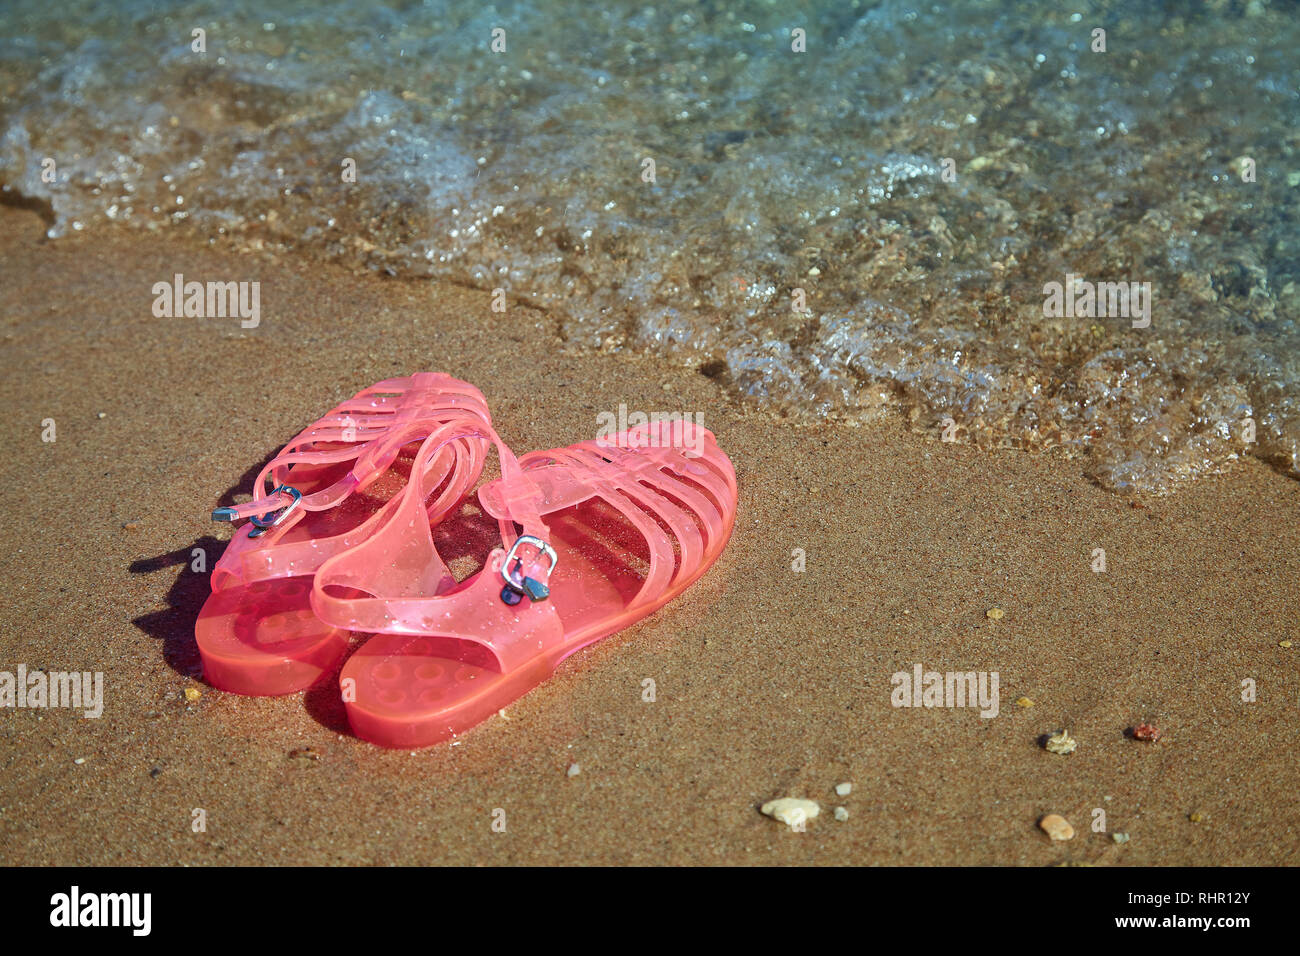 Pink Women's JELLY  SANDALS on a sea shore. LADIES FLAT JELLIES SUMMER BEACH SHOES. Sand background - Stock Image